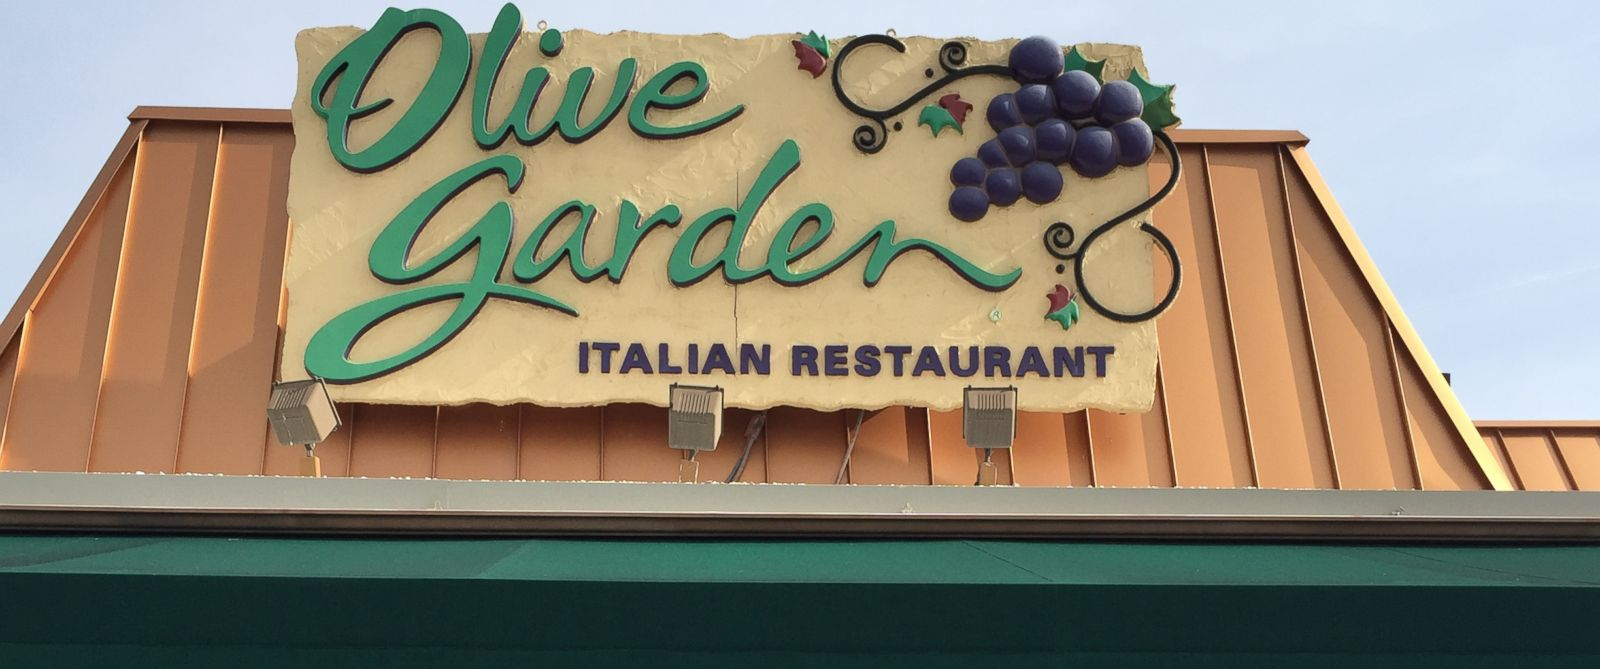 How brands like olive garden are pinching pennies in unexpected ways abc news for Who owns olive garden